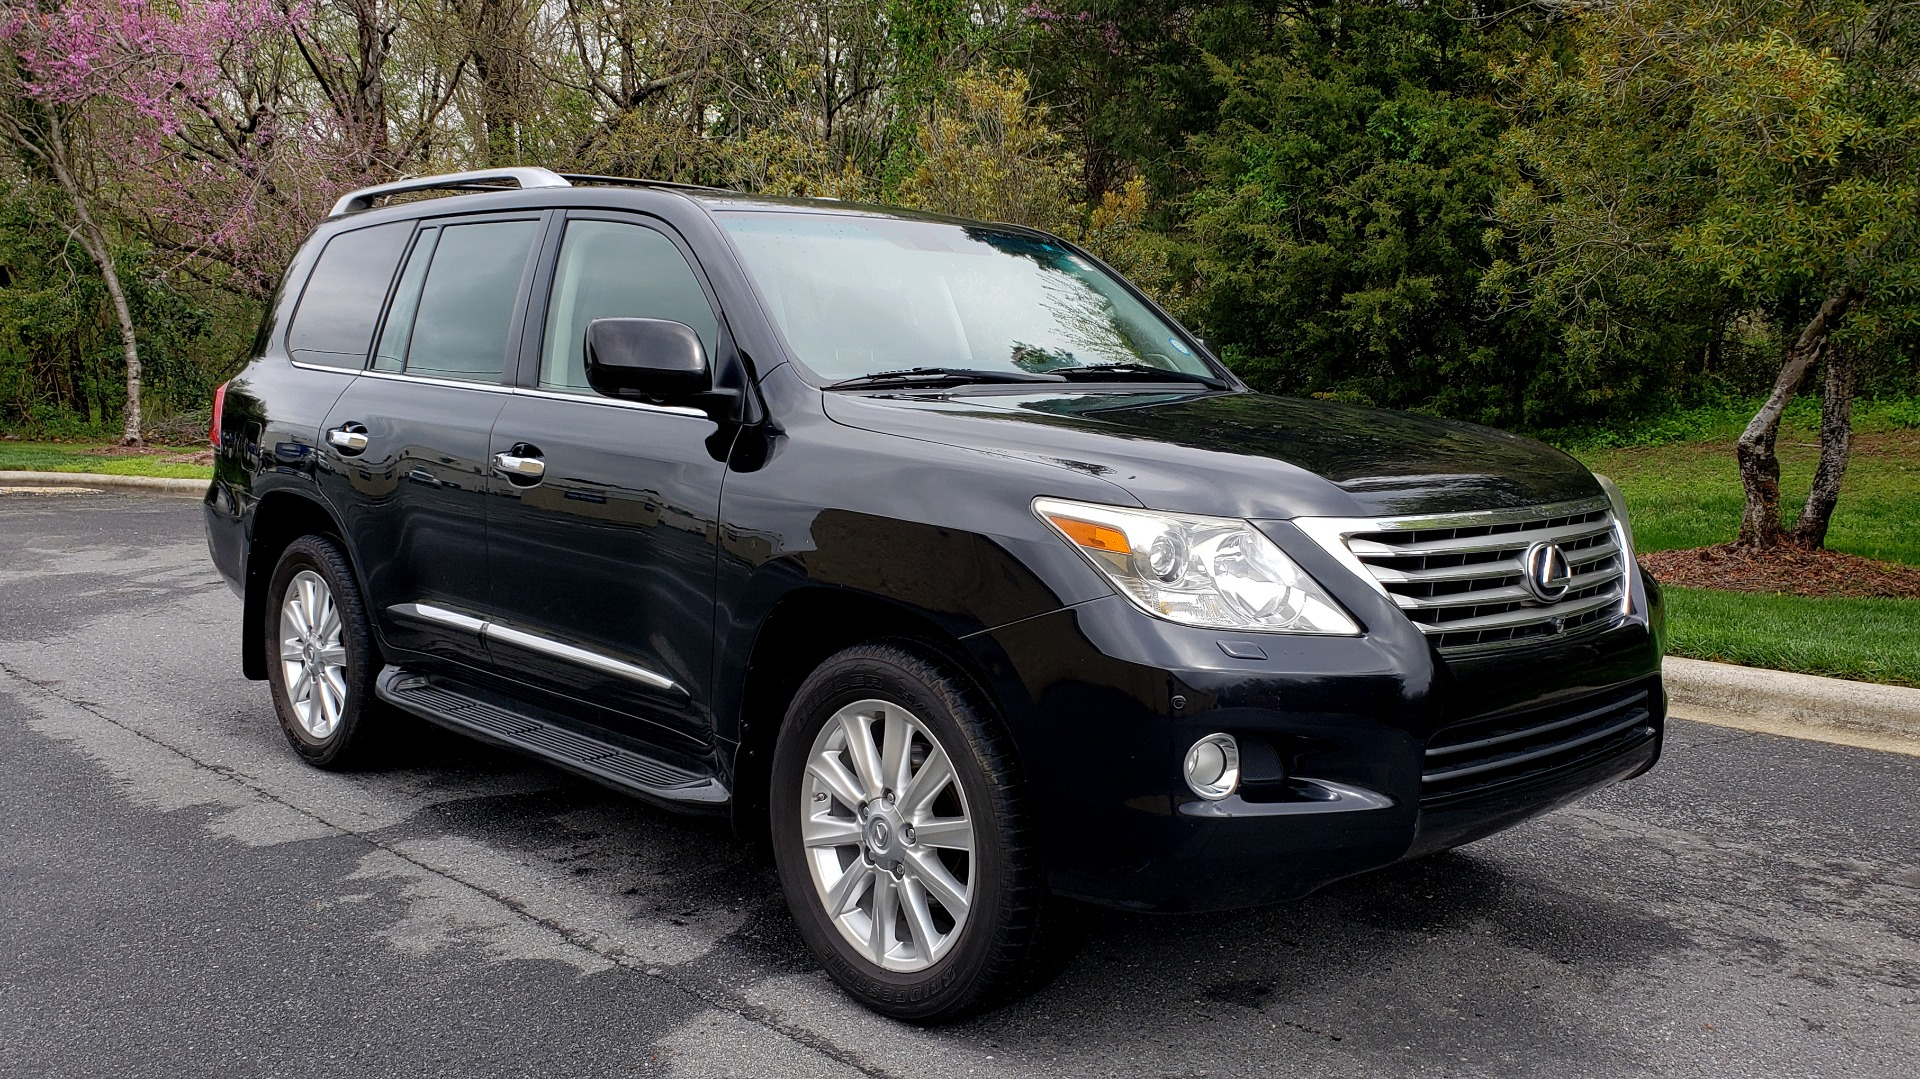 Used 2008 Lexus LX 570 4WD / TECH PKG / NAV / SUNROOF / MARK LEVINSON / PARK ASST for sale $22,995 at Formula Imports in Charlotte NC 28227 4